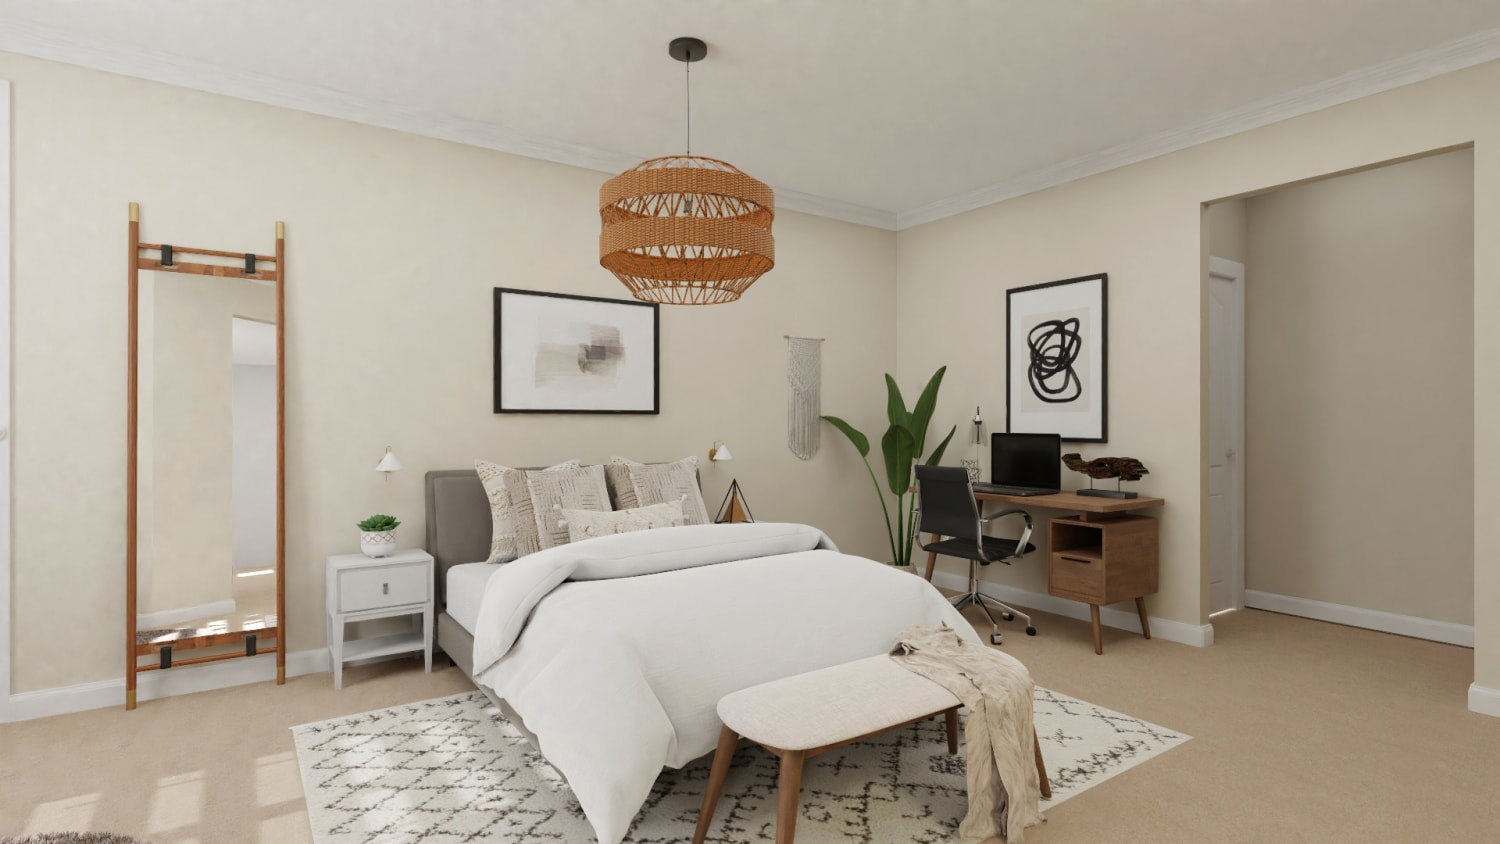 A Bedroom Worthy of Boho Wall-of-Fame Design By Spacejoy